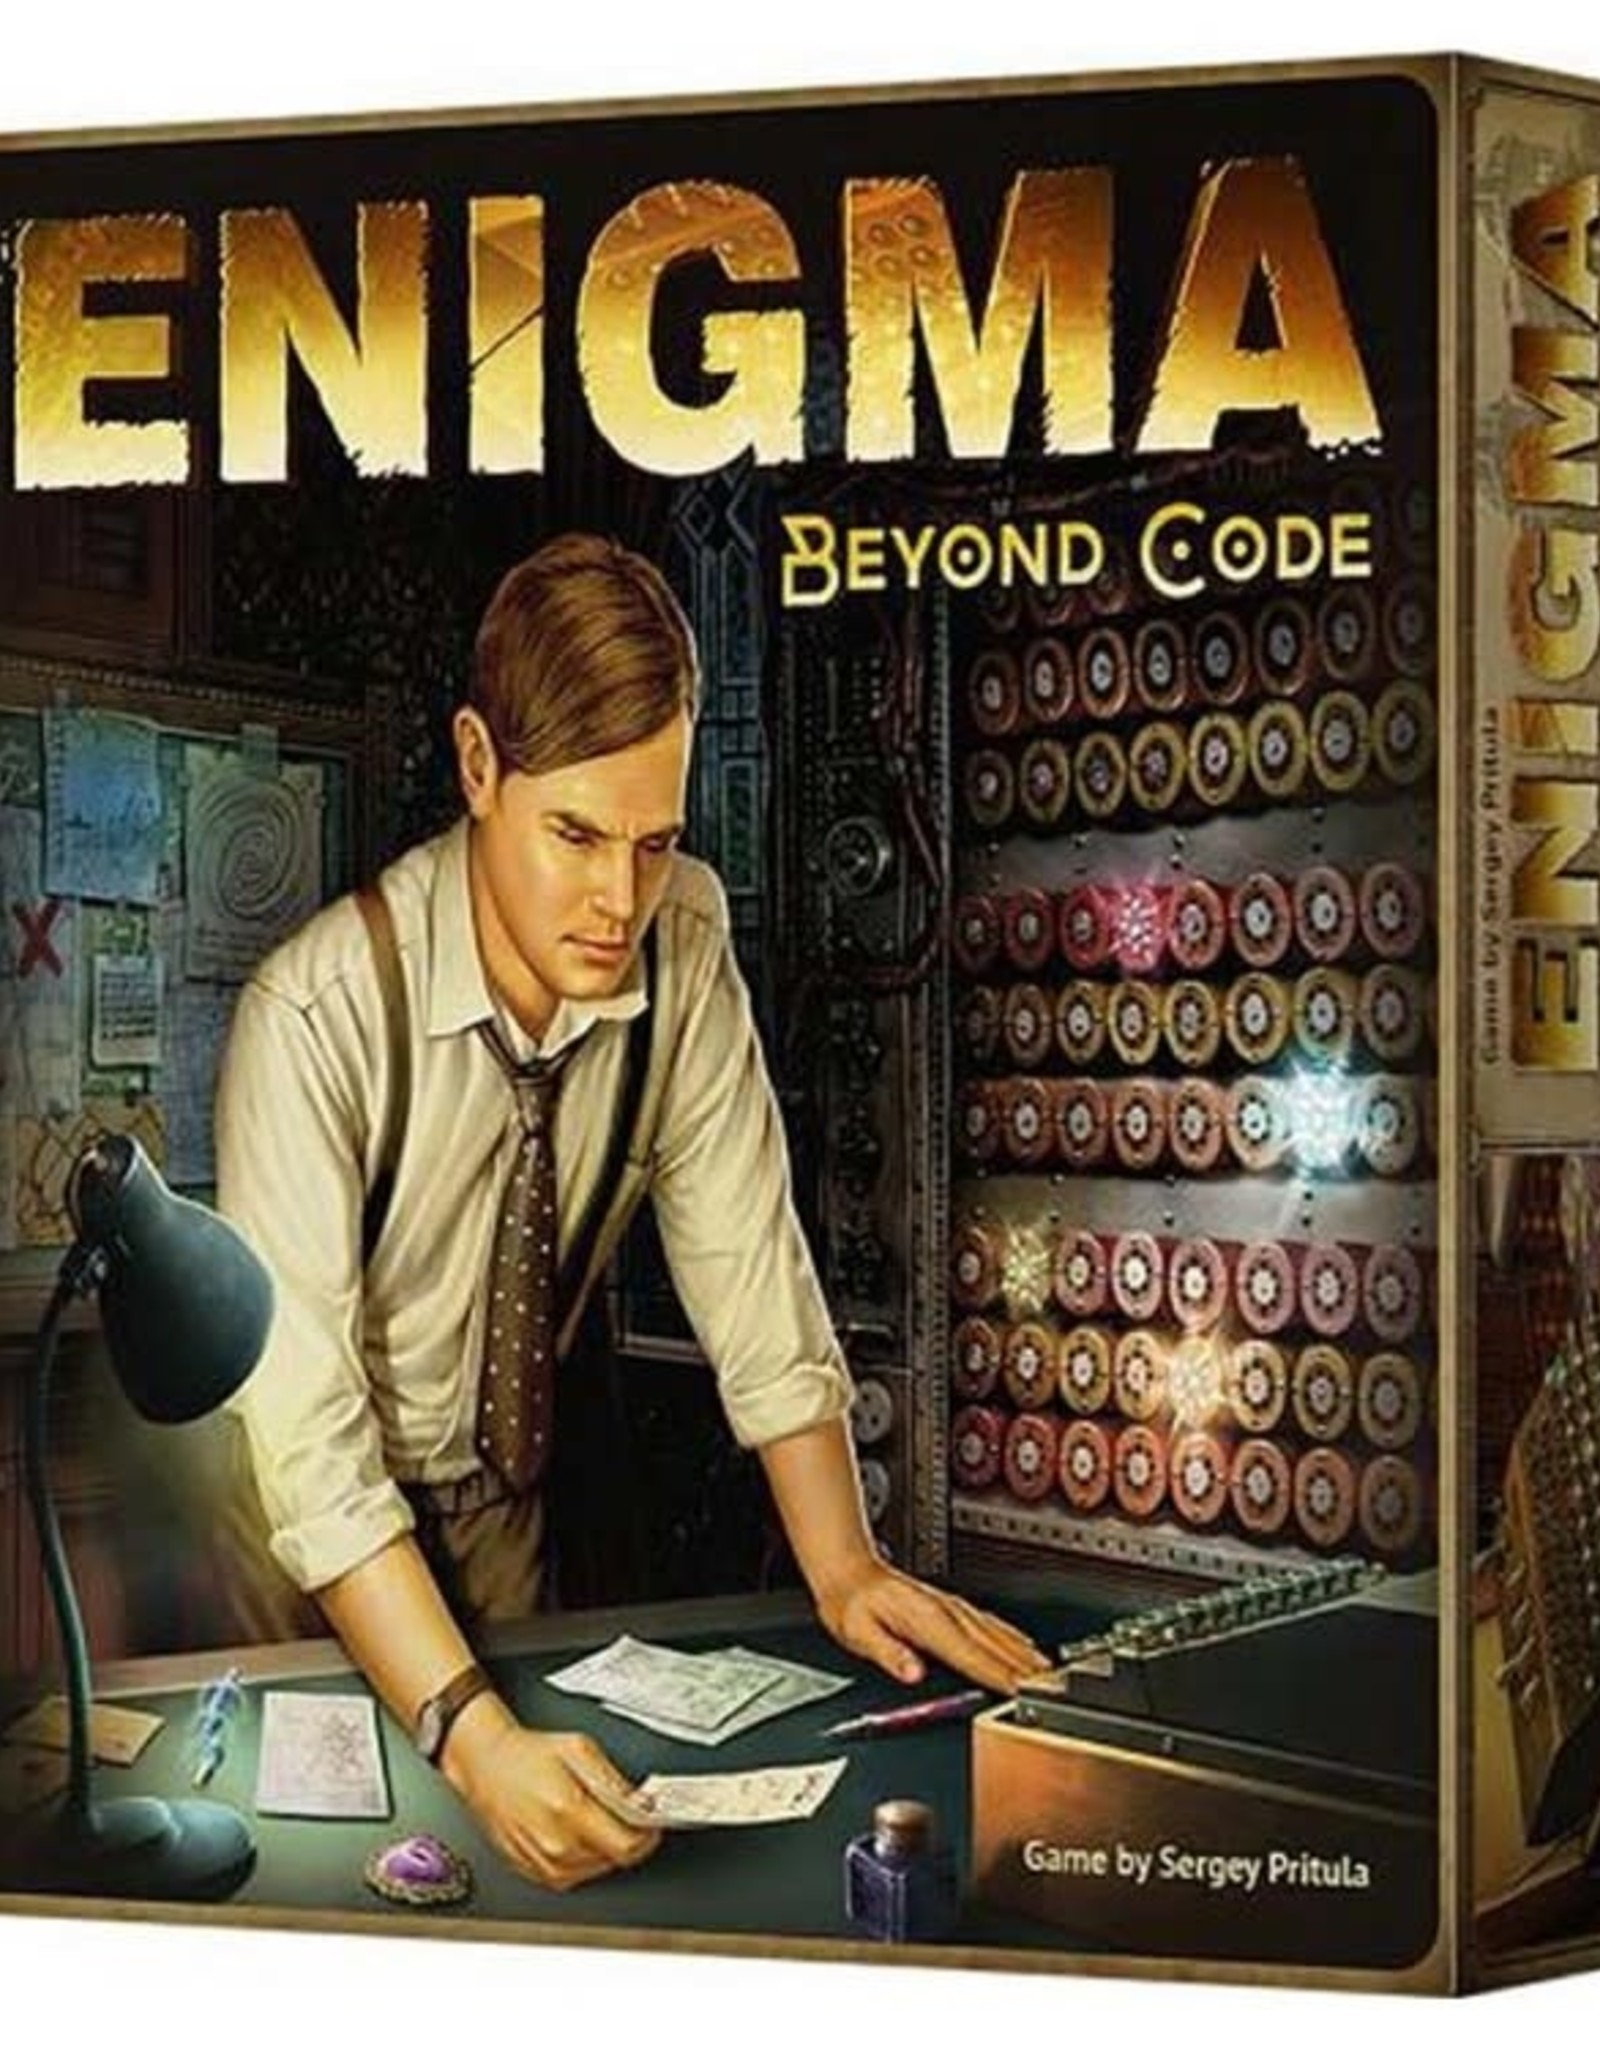 RENTAL - Enigma: Beyond Code 1 lb 7.4 oz